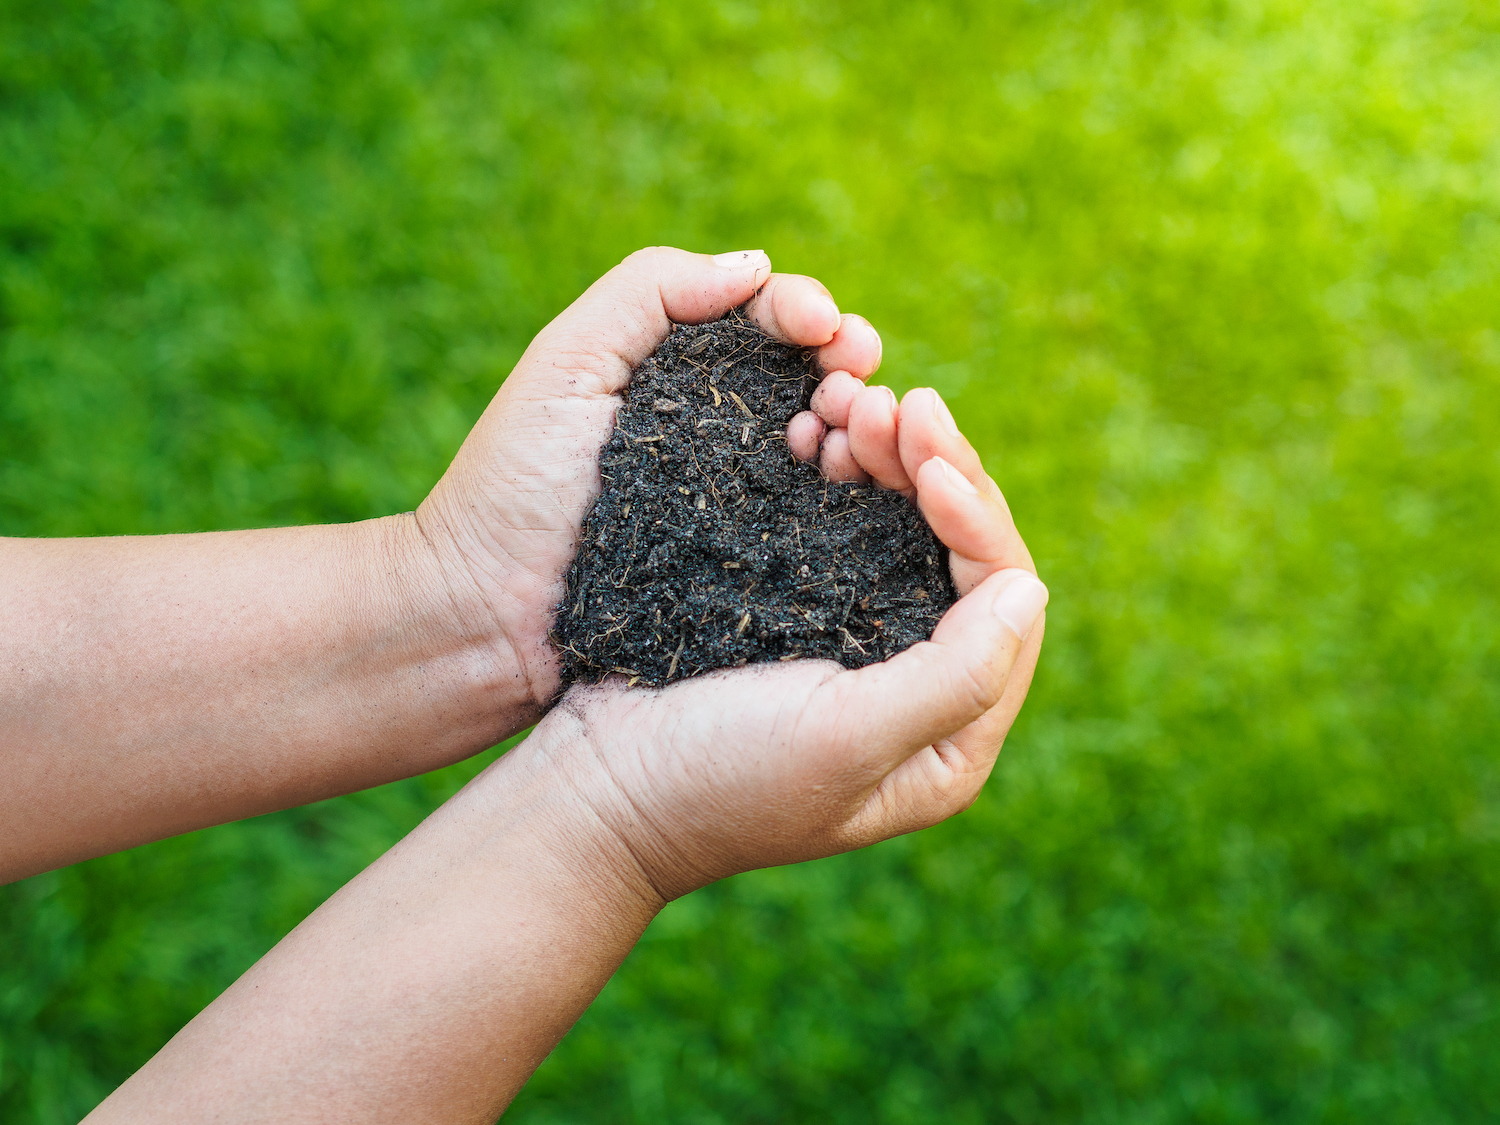 hands holding soil with probiotic soil additive